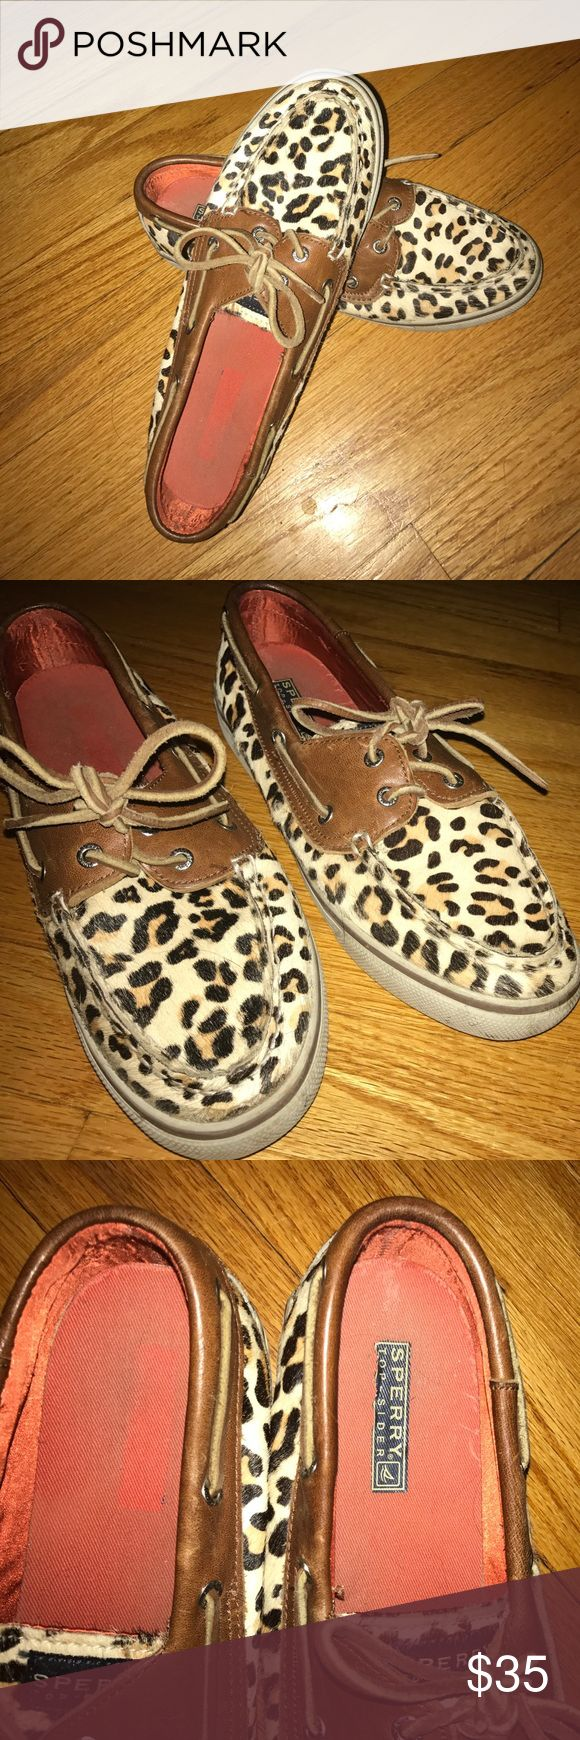 Sperry calf hair leopard top Siders Sperry top siders leopard calf hair shoes. Size 8 Women's. Some signs of wear but still look very good. Sperry Top-Sider Shoes Flats & Loafers